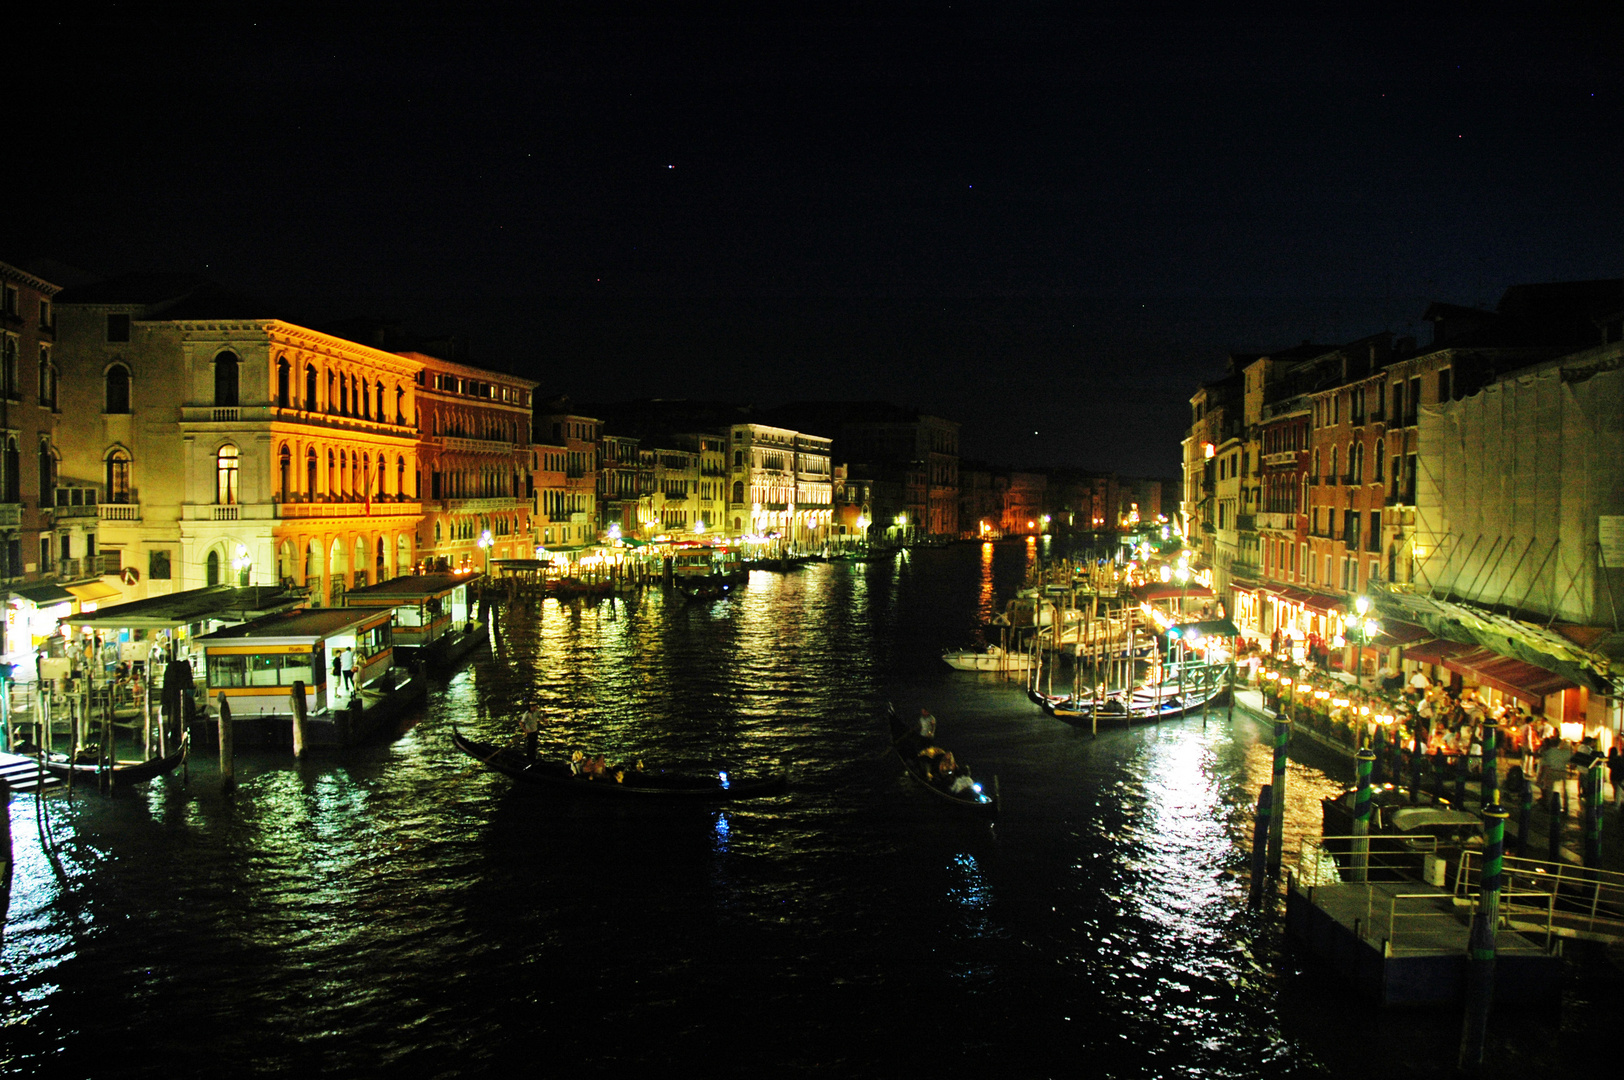 Grand canal by night